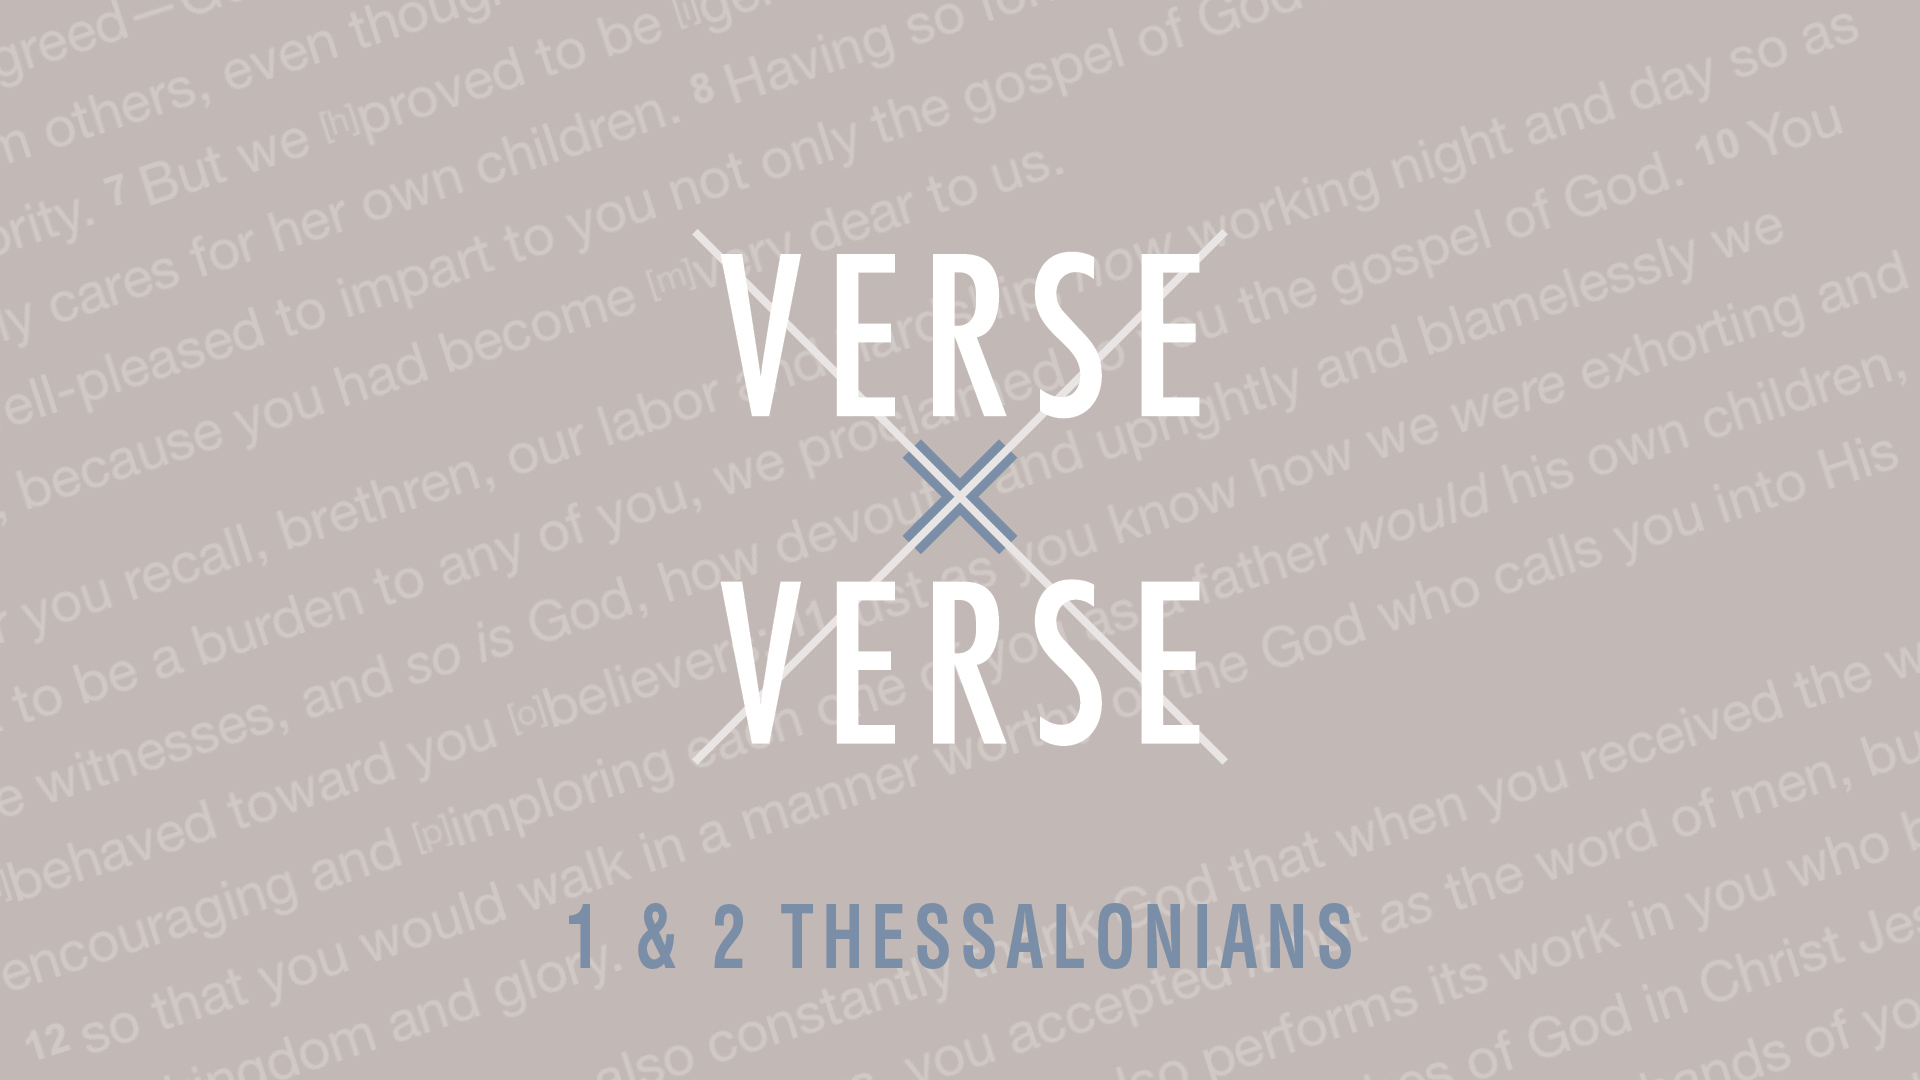 Verse By Verse - 1 & 2 Thessalonians